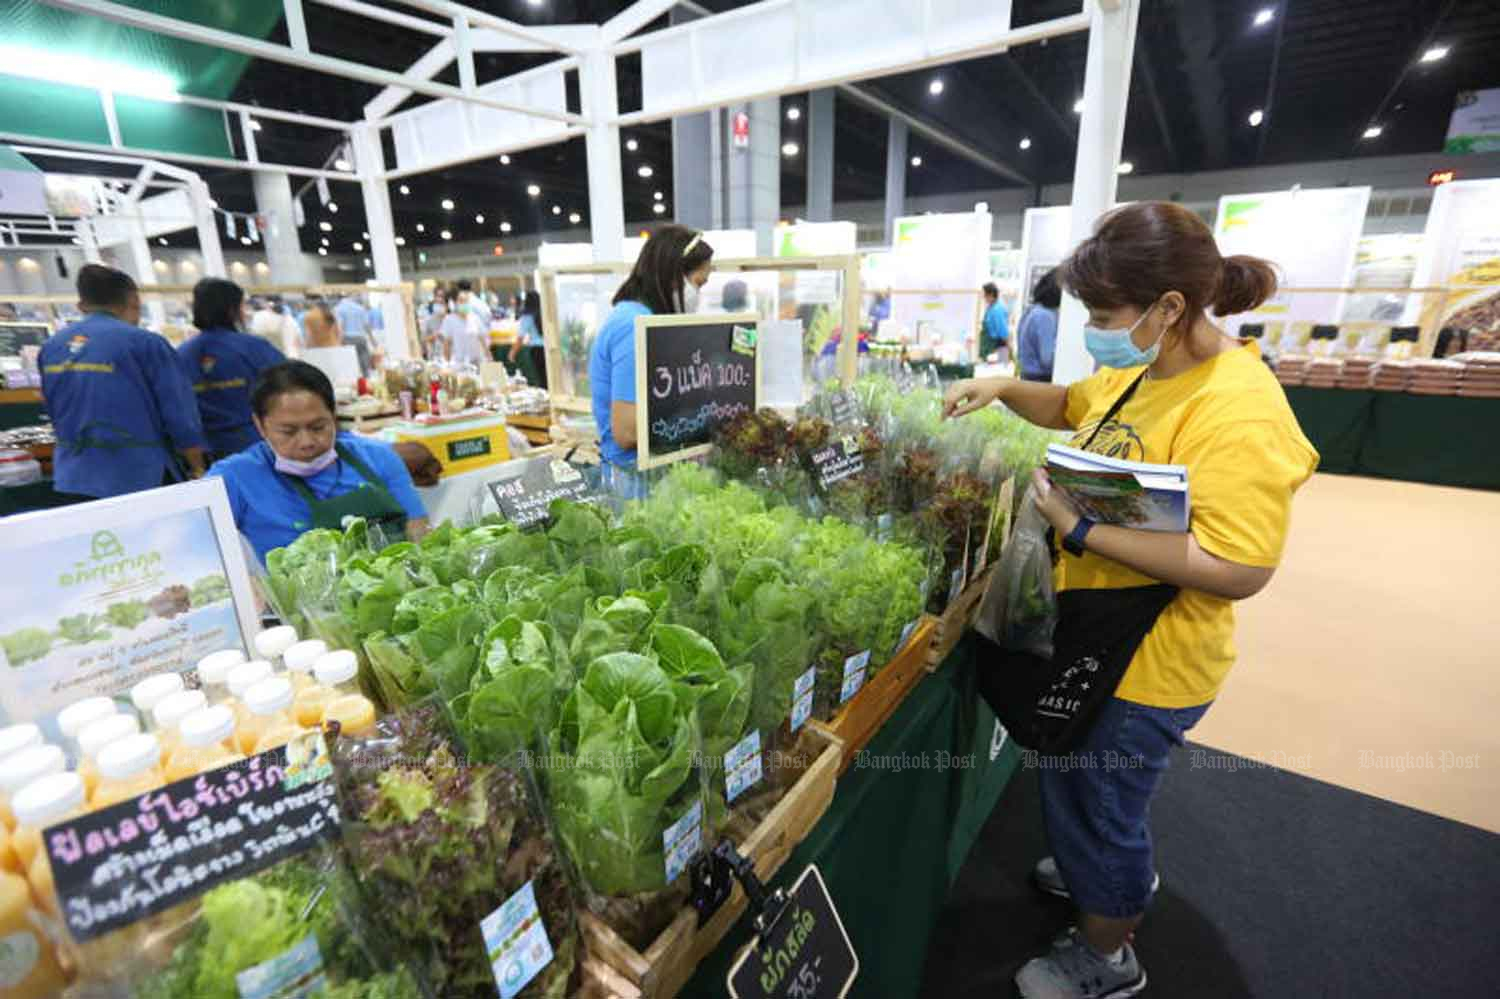 Visitors and vendors wear face masks to help prevent the spread of Covid-19 at a farm product fair in Nonthaburi province on Thursday. (Photo: Pattarapong Chatpattarasill)